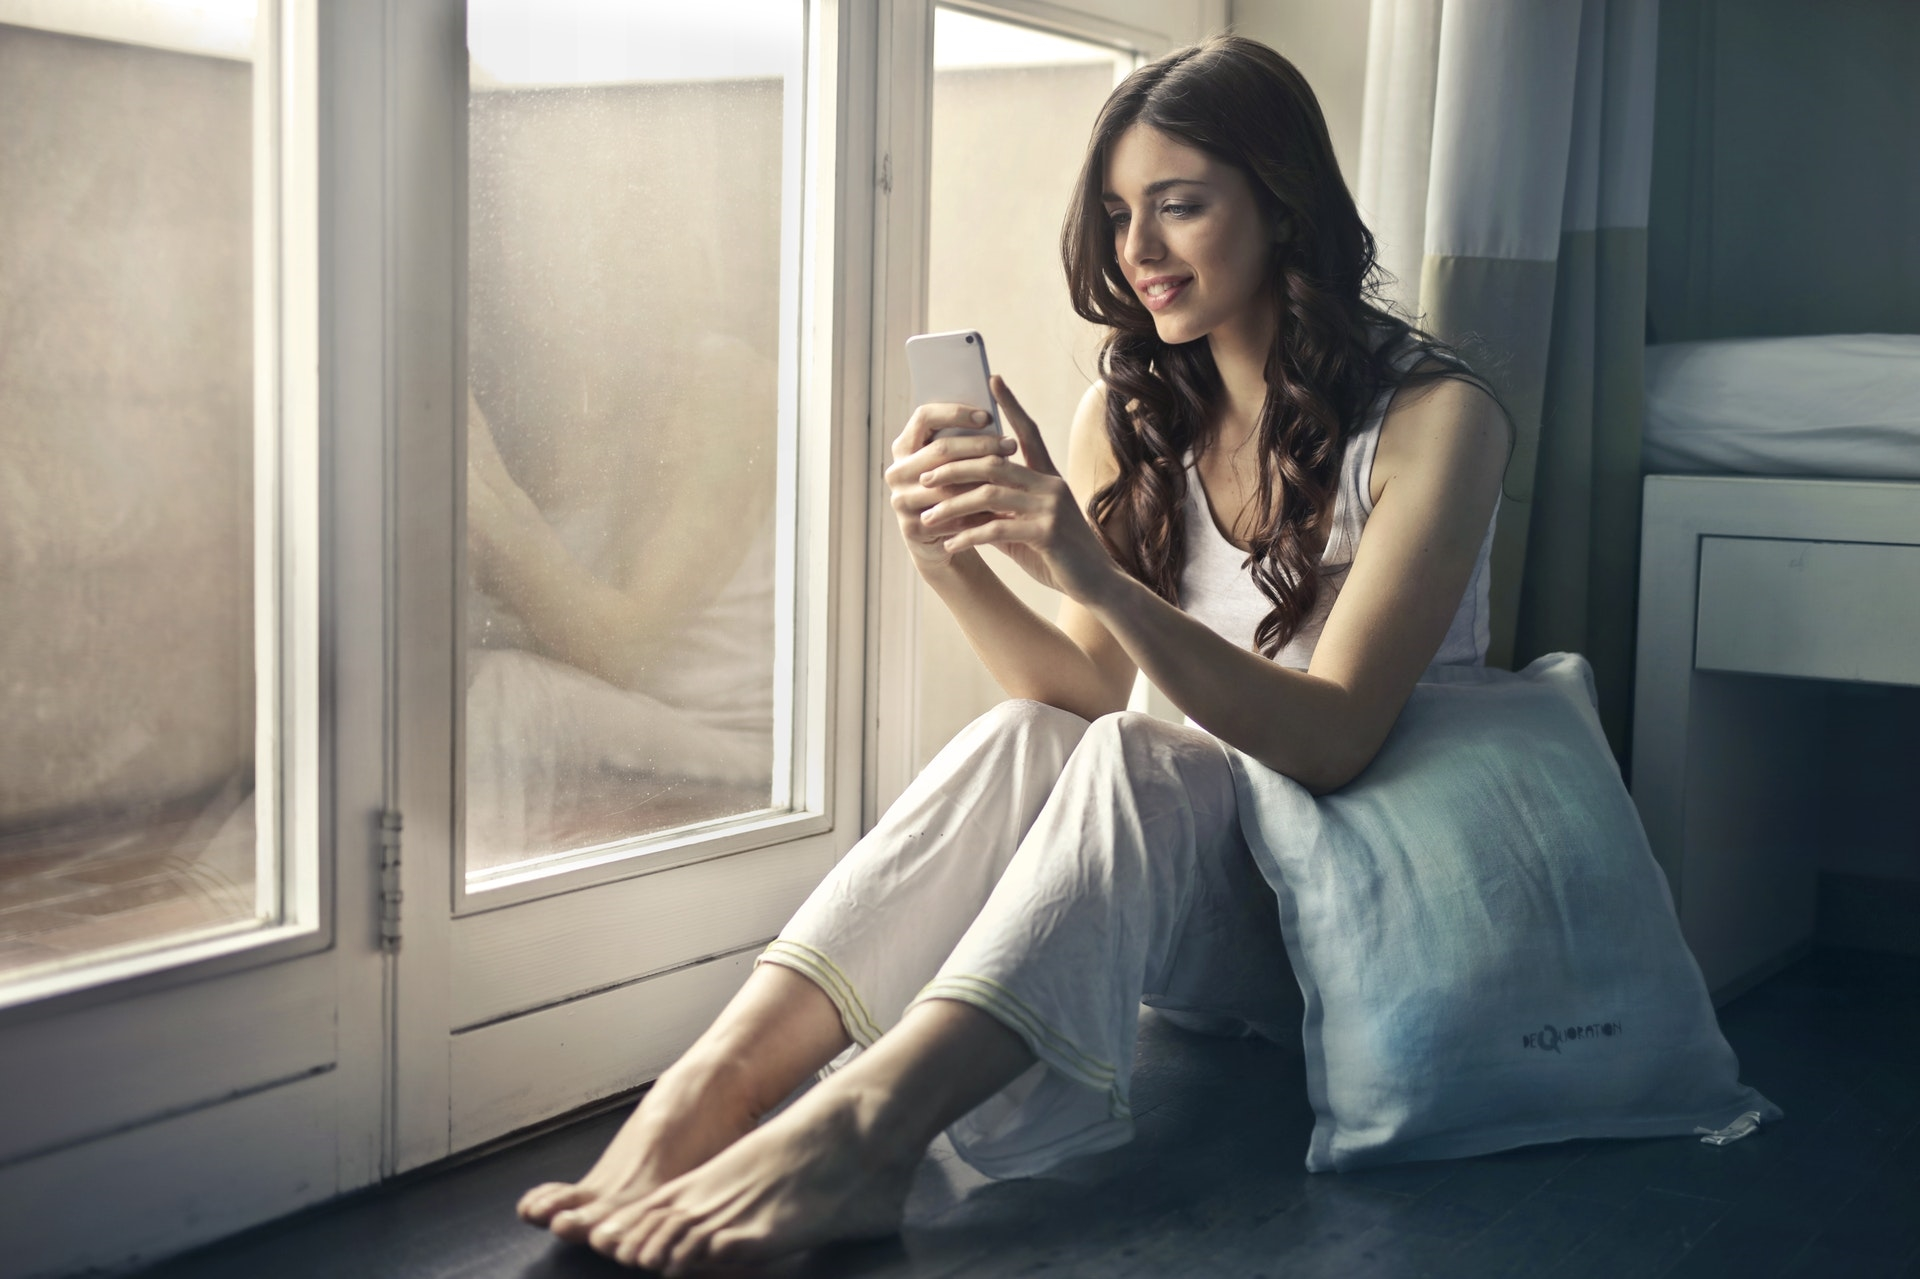 A young lady uses her smartphone at home